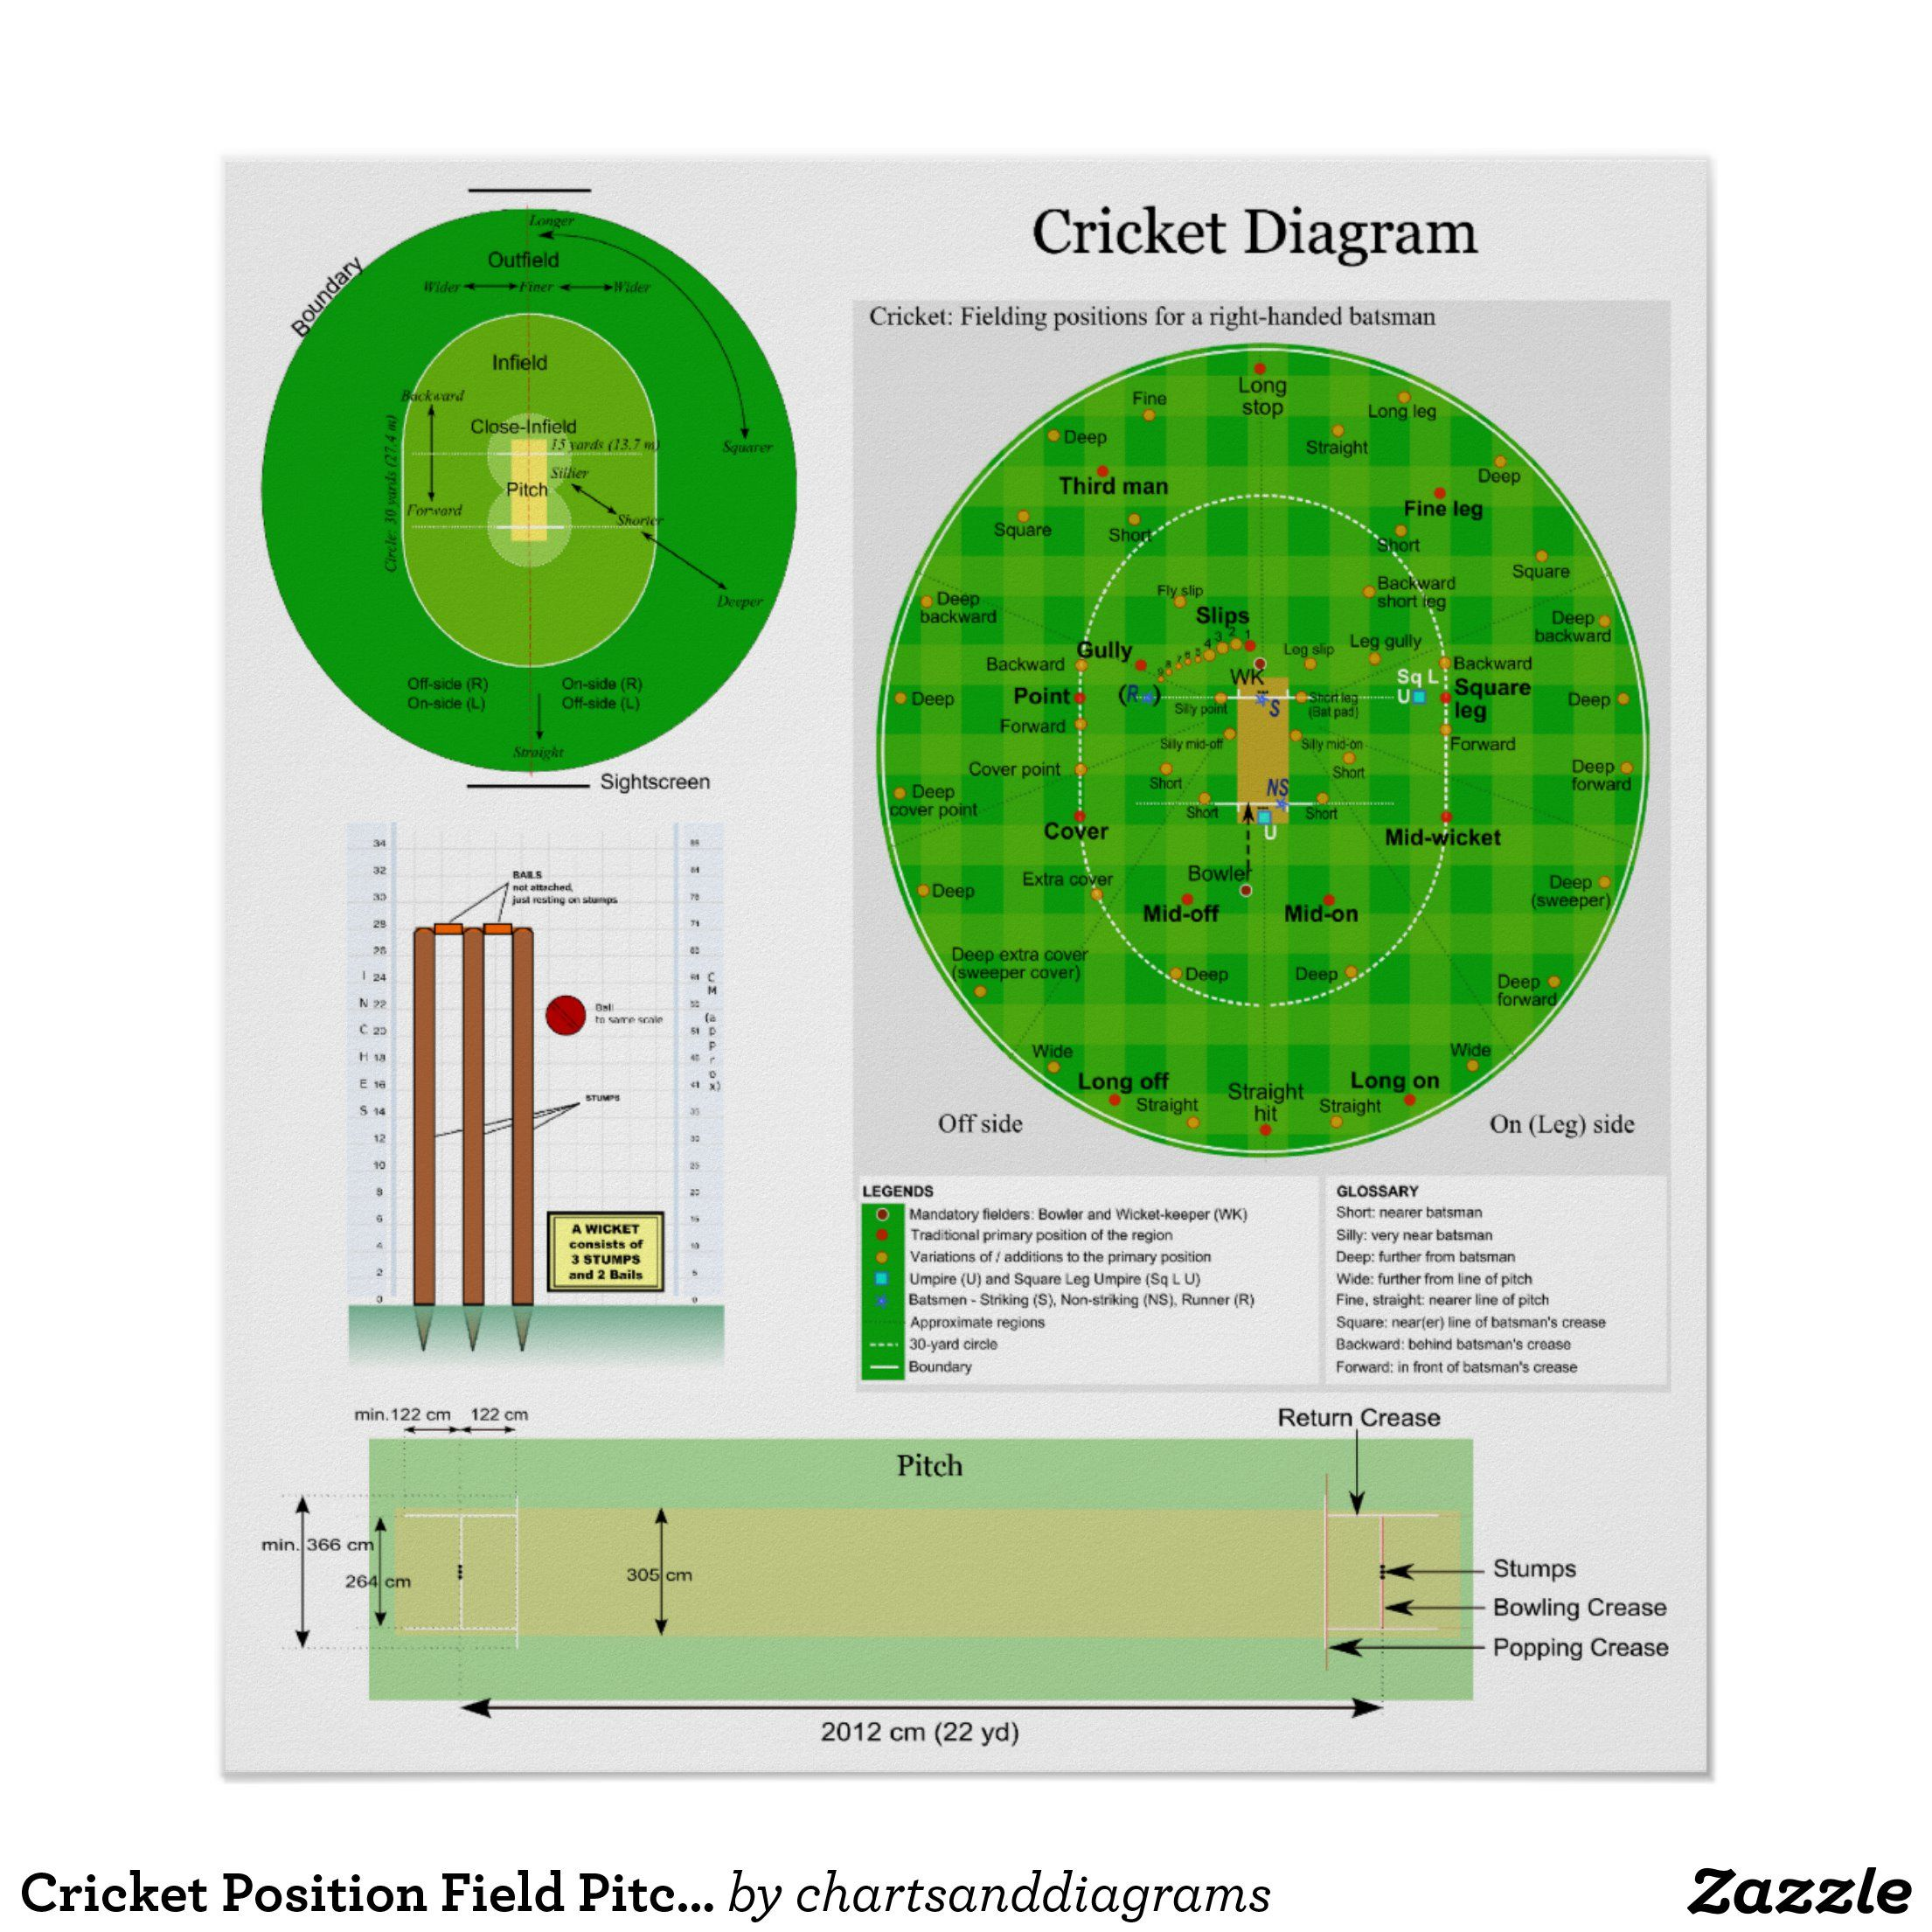 Cricket Position Field Pitch And Wicket Diagram Poster Zazzle Com In 2020 Cricket Wicket Wicket Cricket